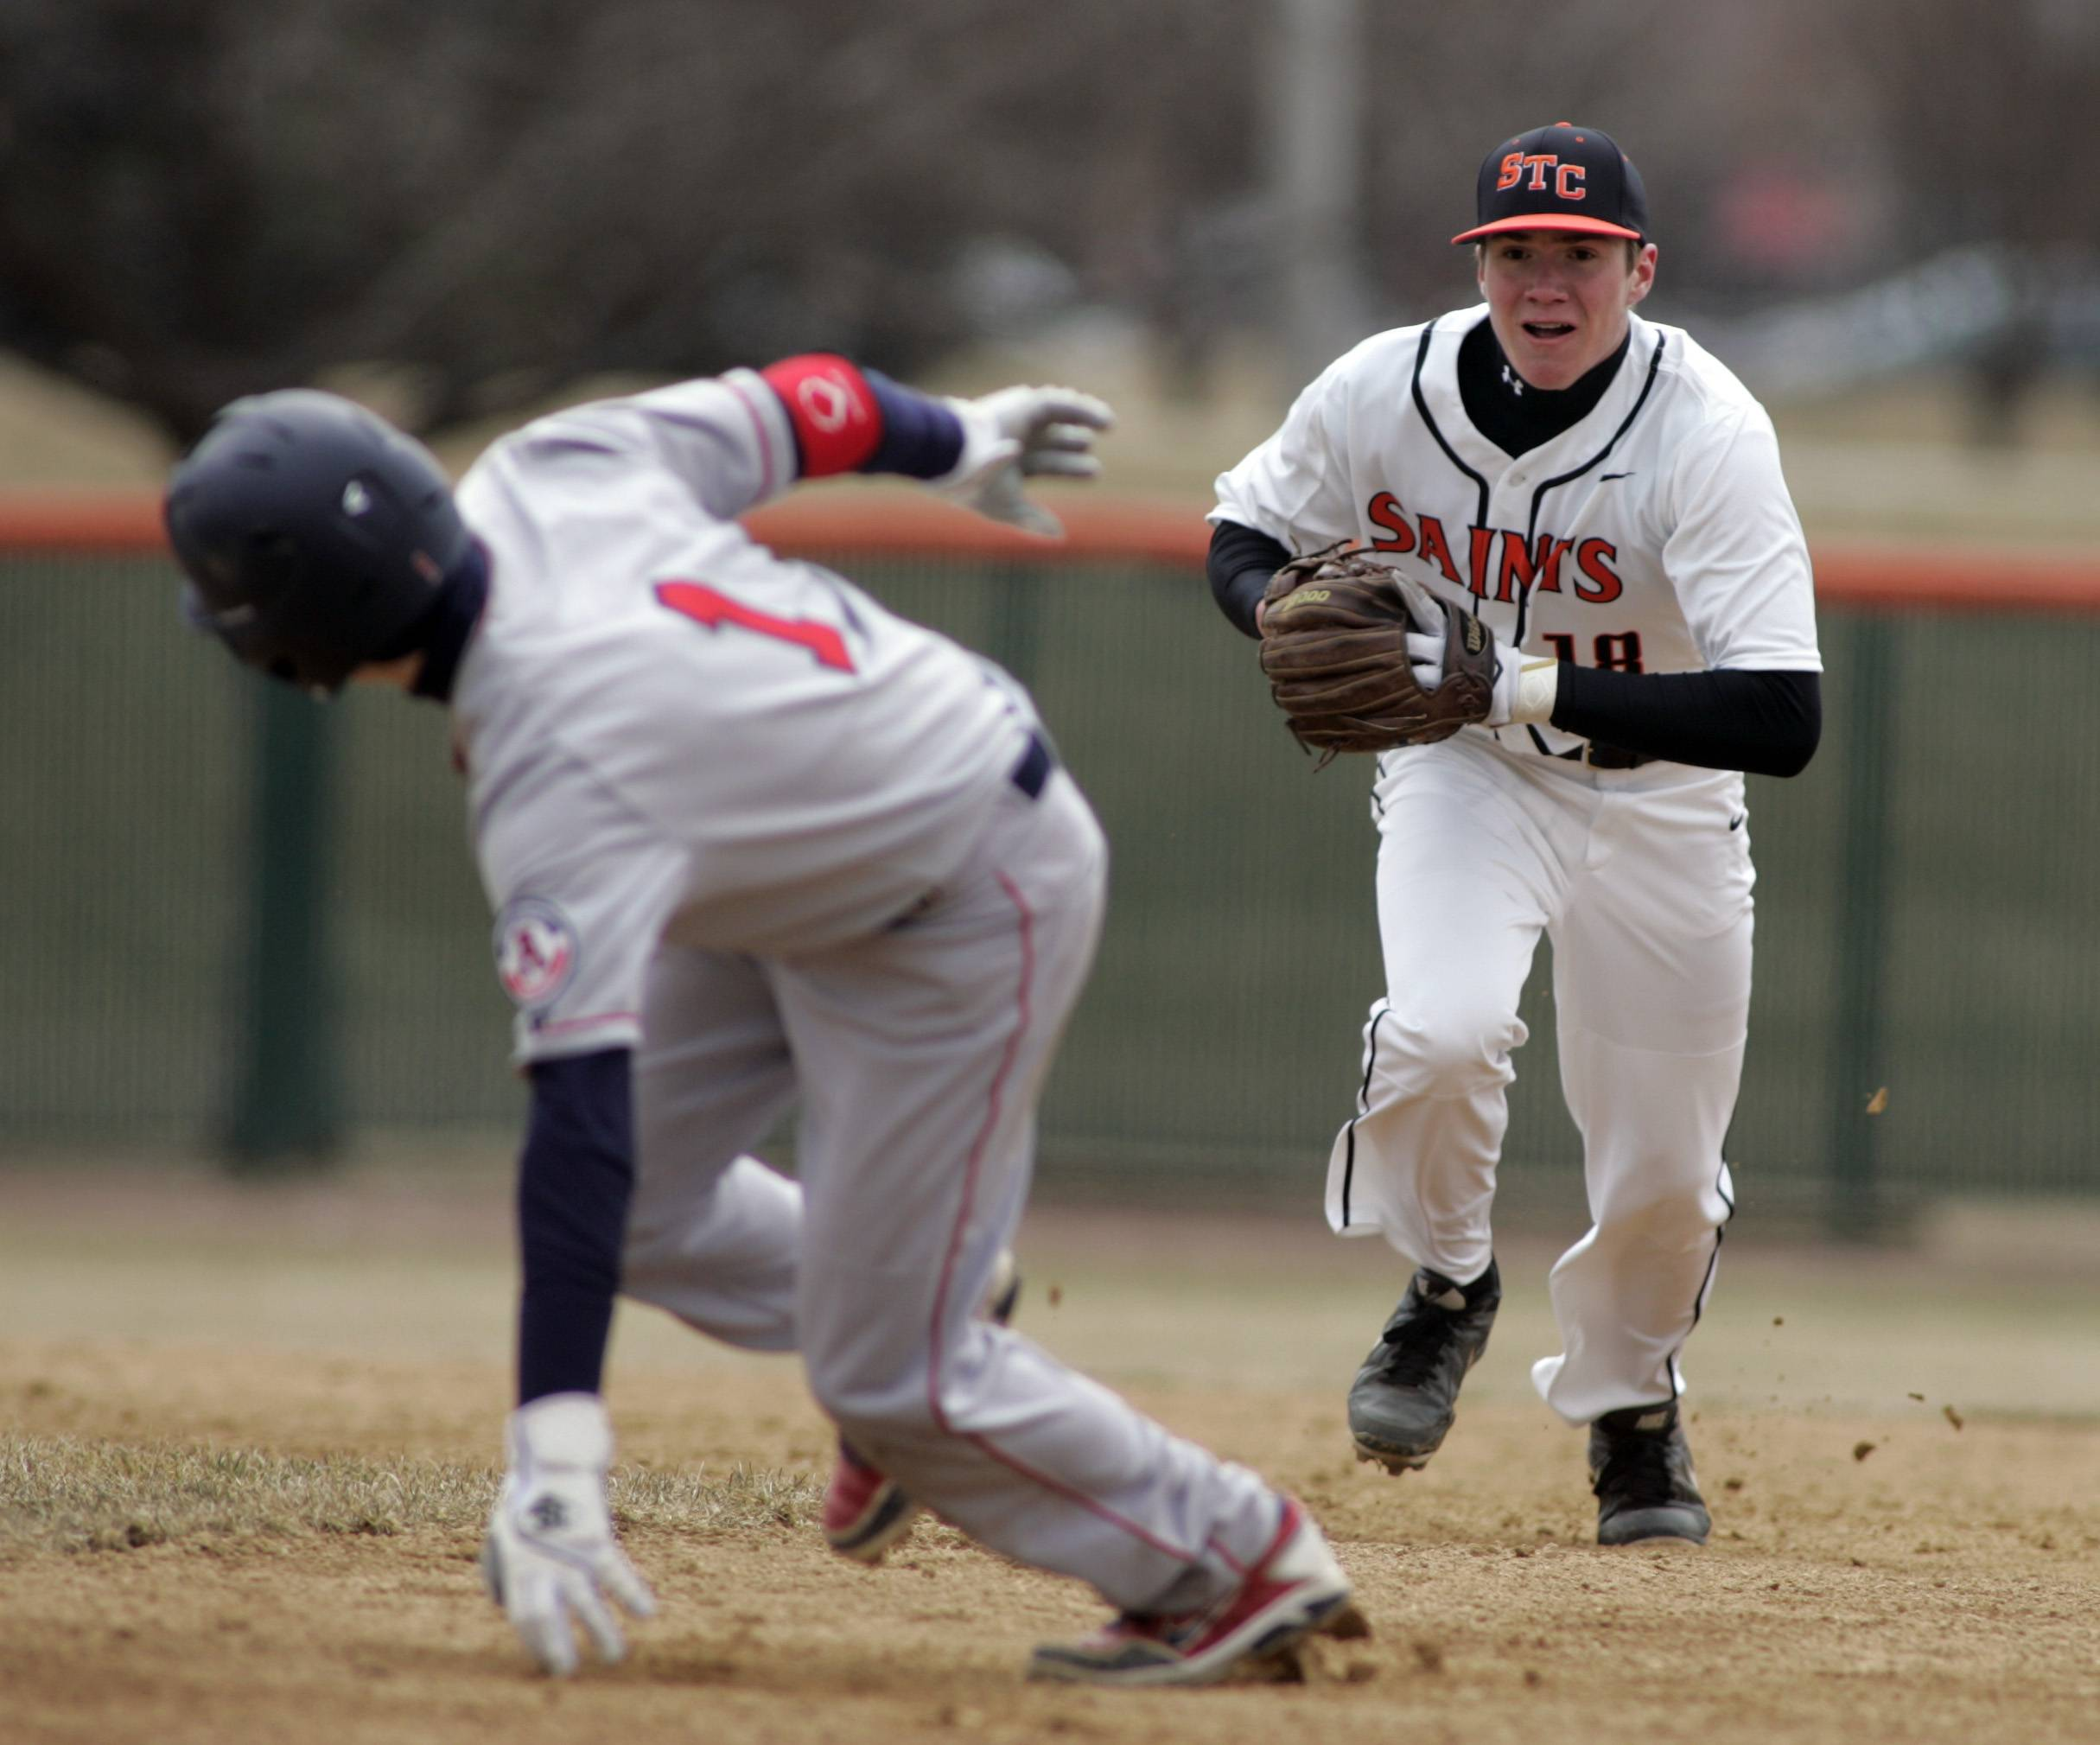 Saints' Jake Milosch, 18, pressure West Aurora's Michael Golich, 1, during a run down Tuesday.